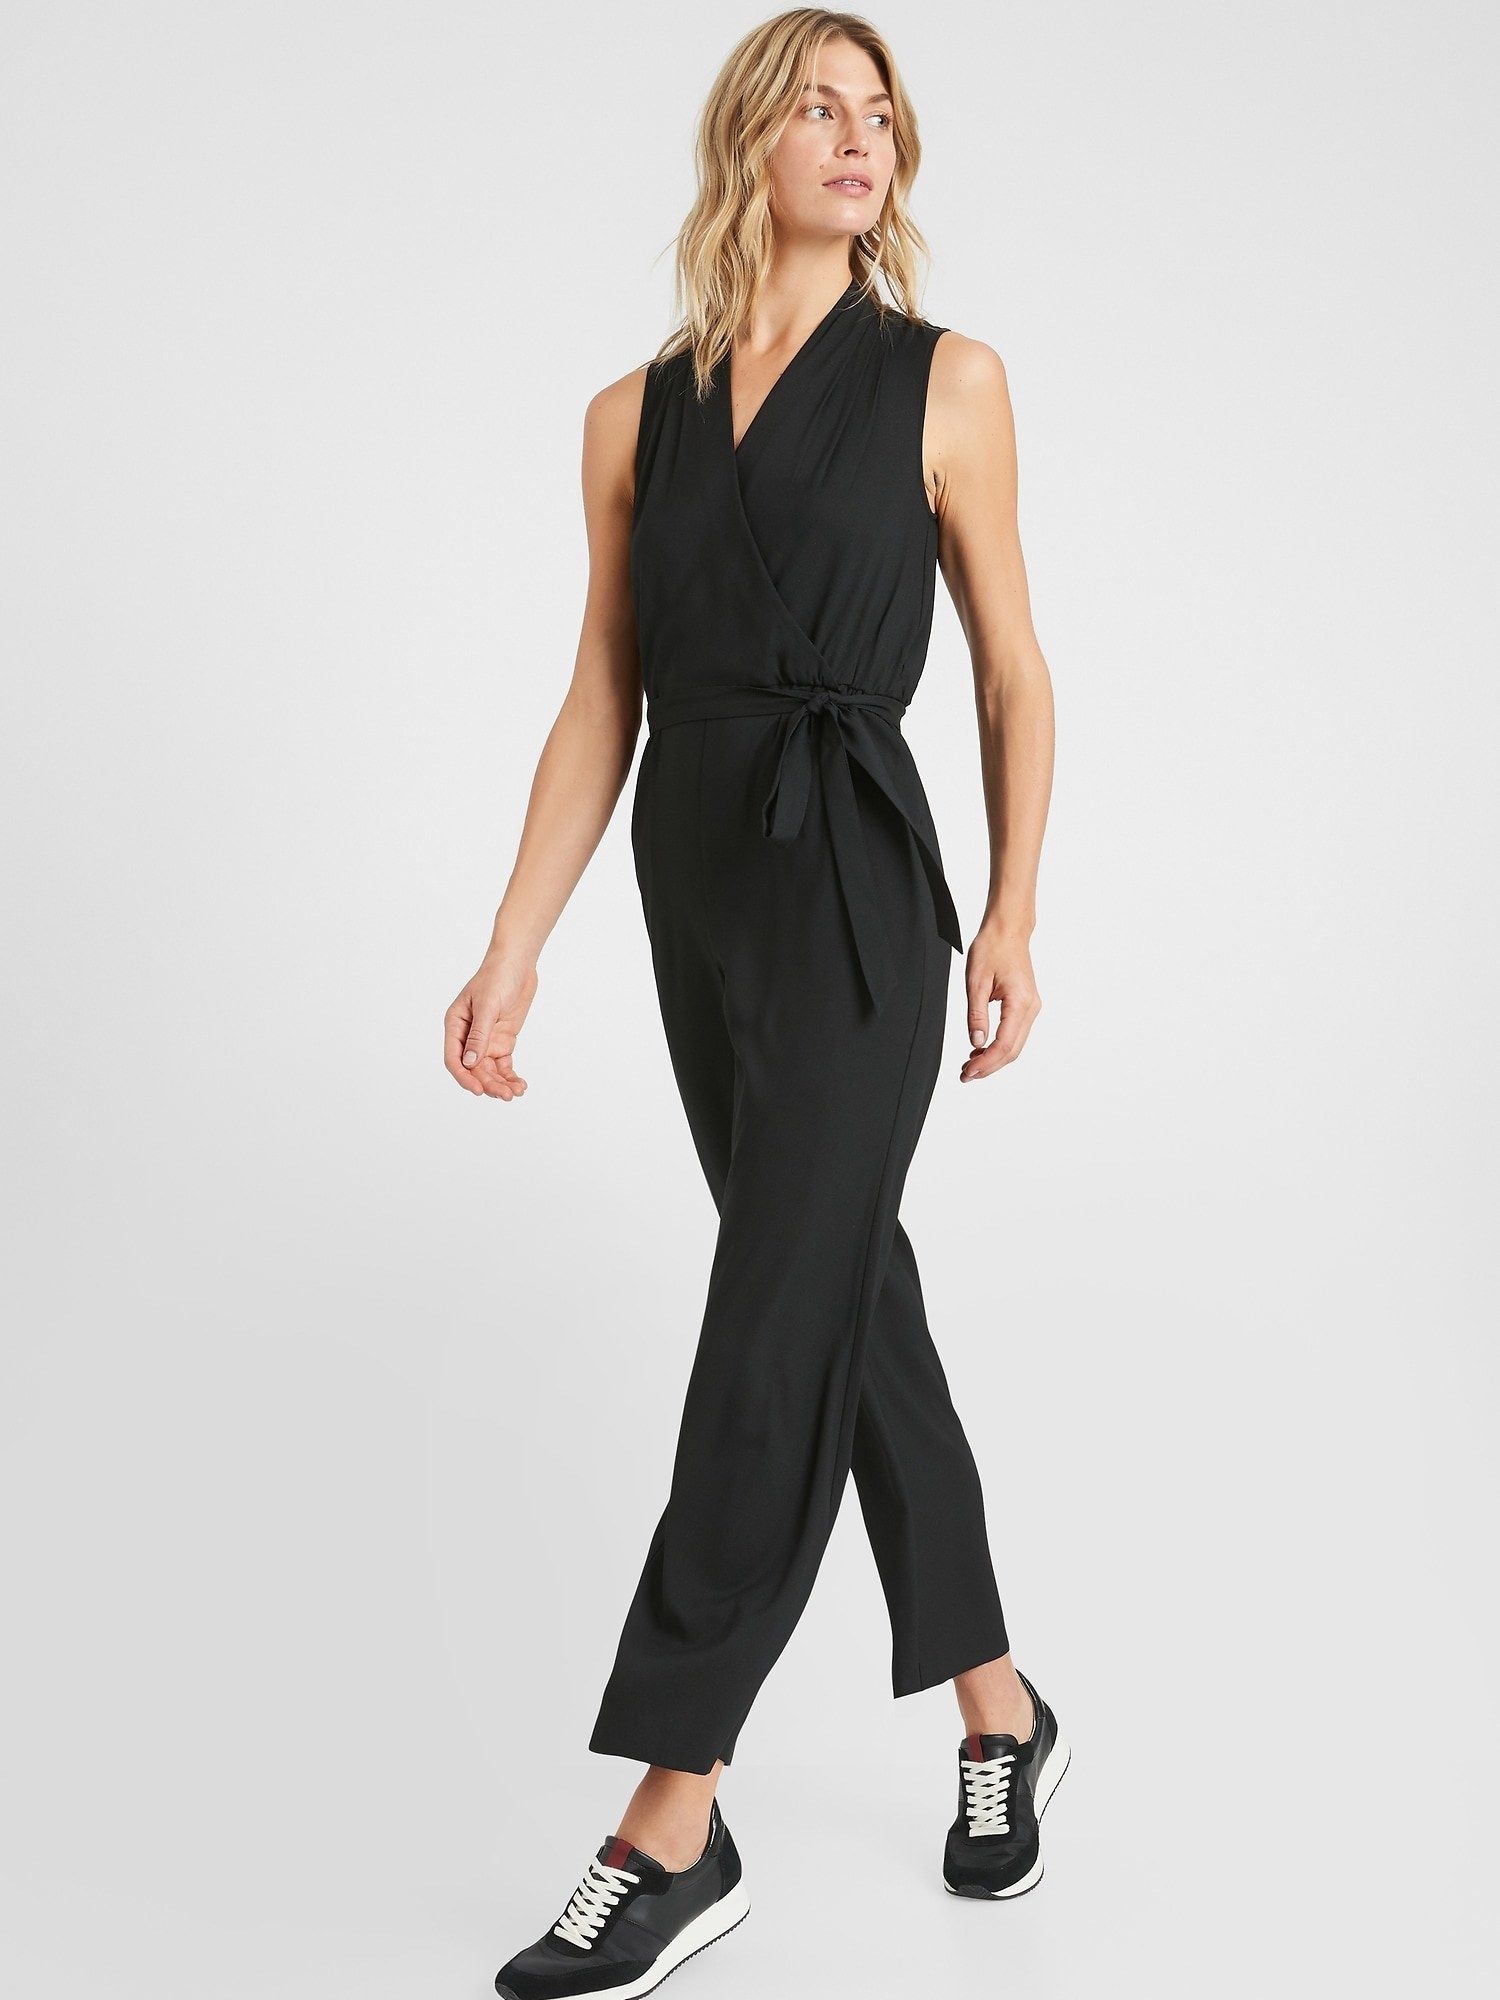 Model in the wrap-style jumpsuit in black